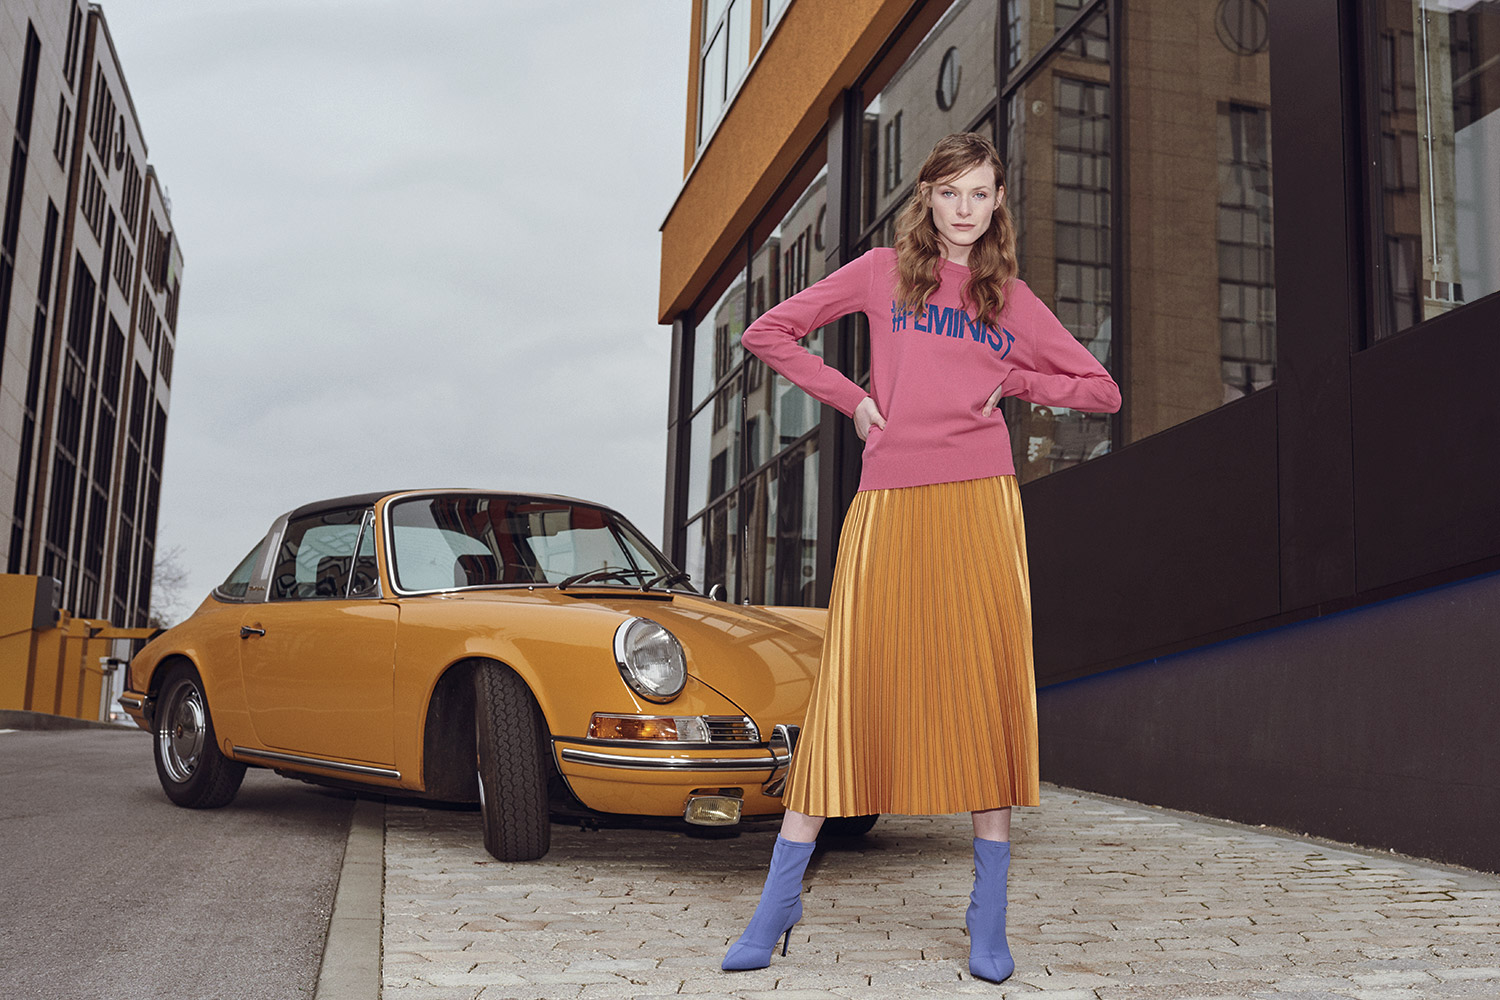 The New Look by Astrid Obert Latest Magazine